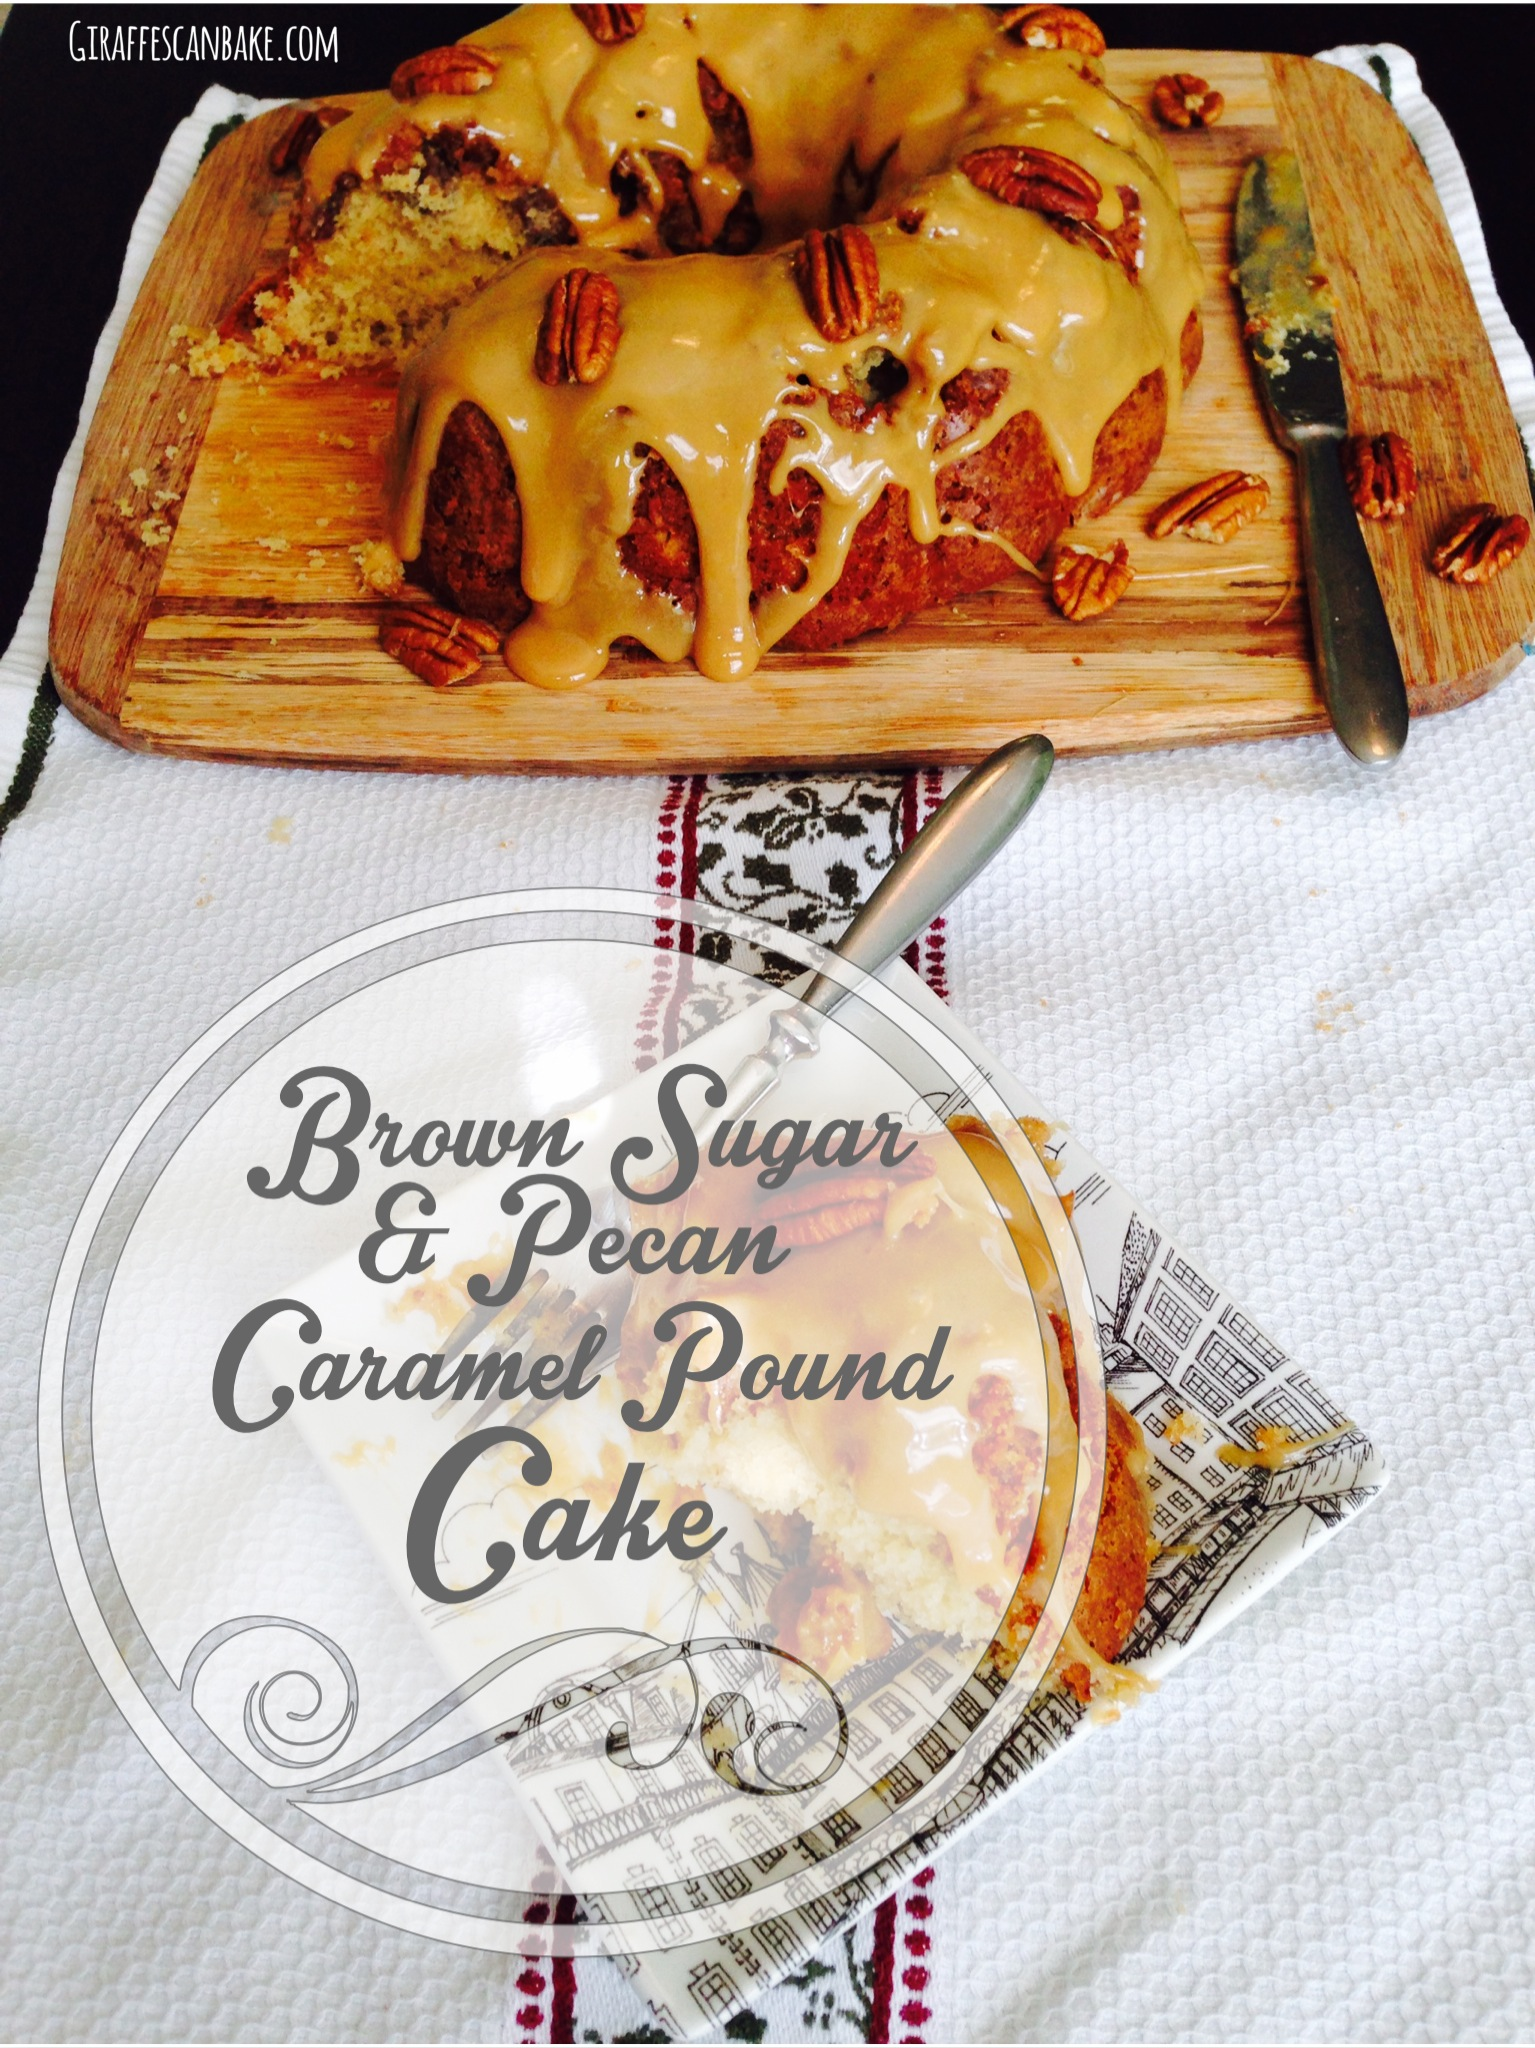 Brown sugar and pecan caramel pound cake